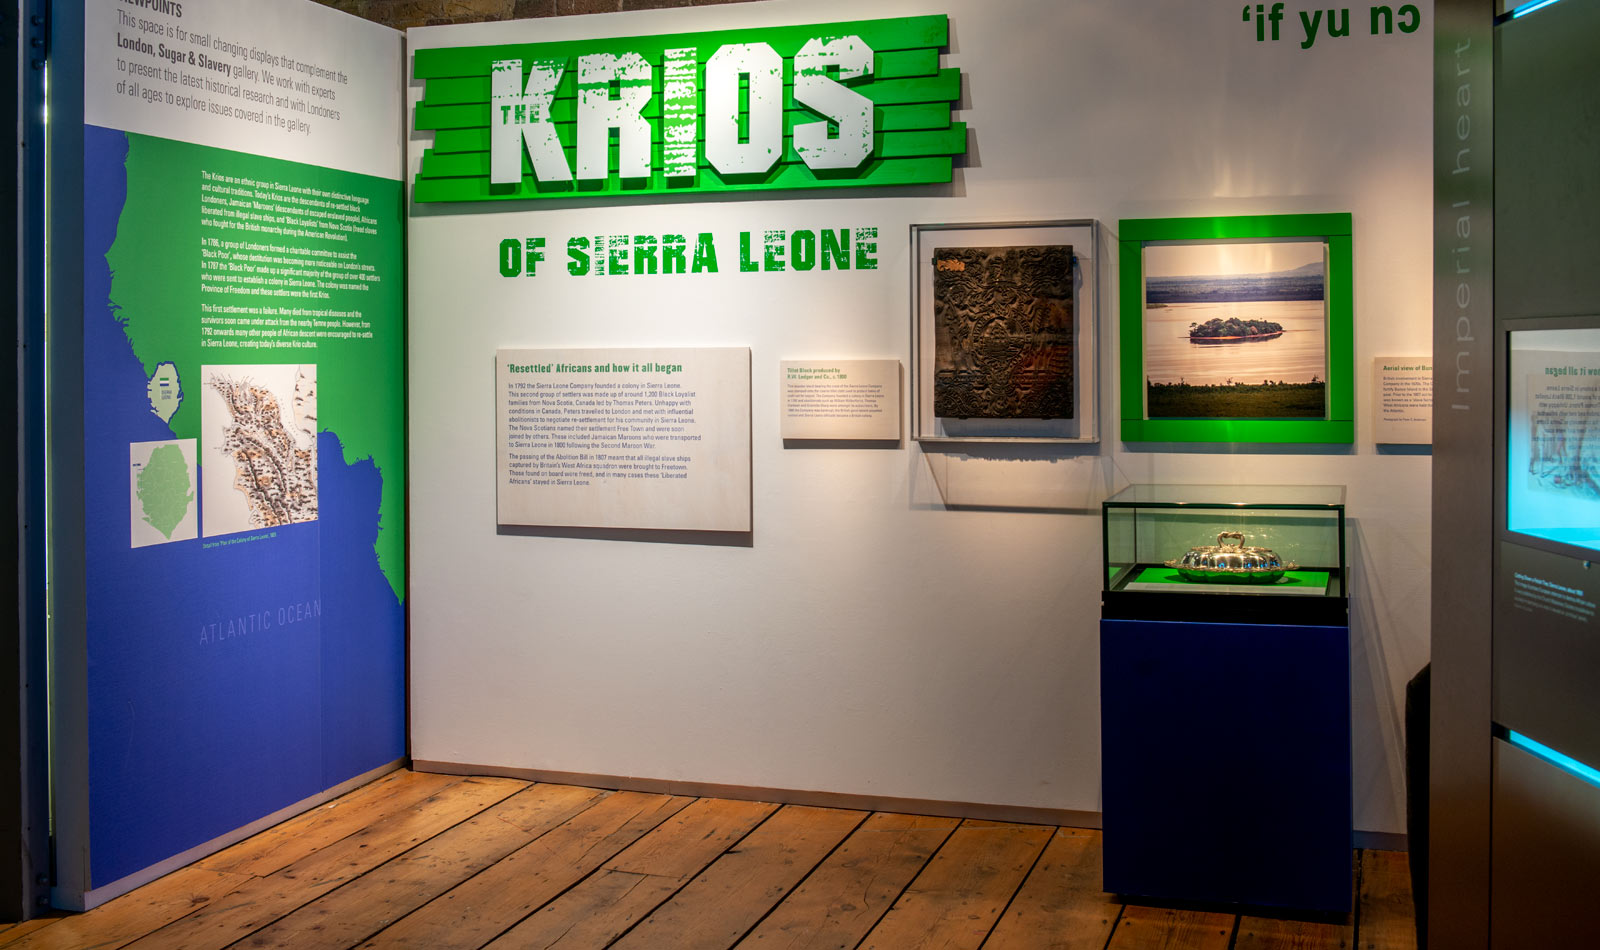 The entrance to the Krios display at the Museum of London Docklands.